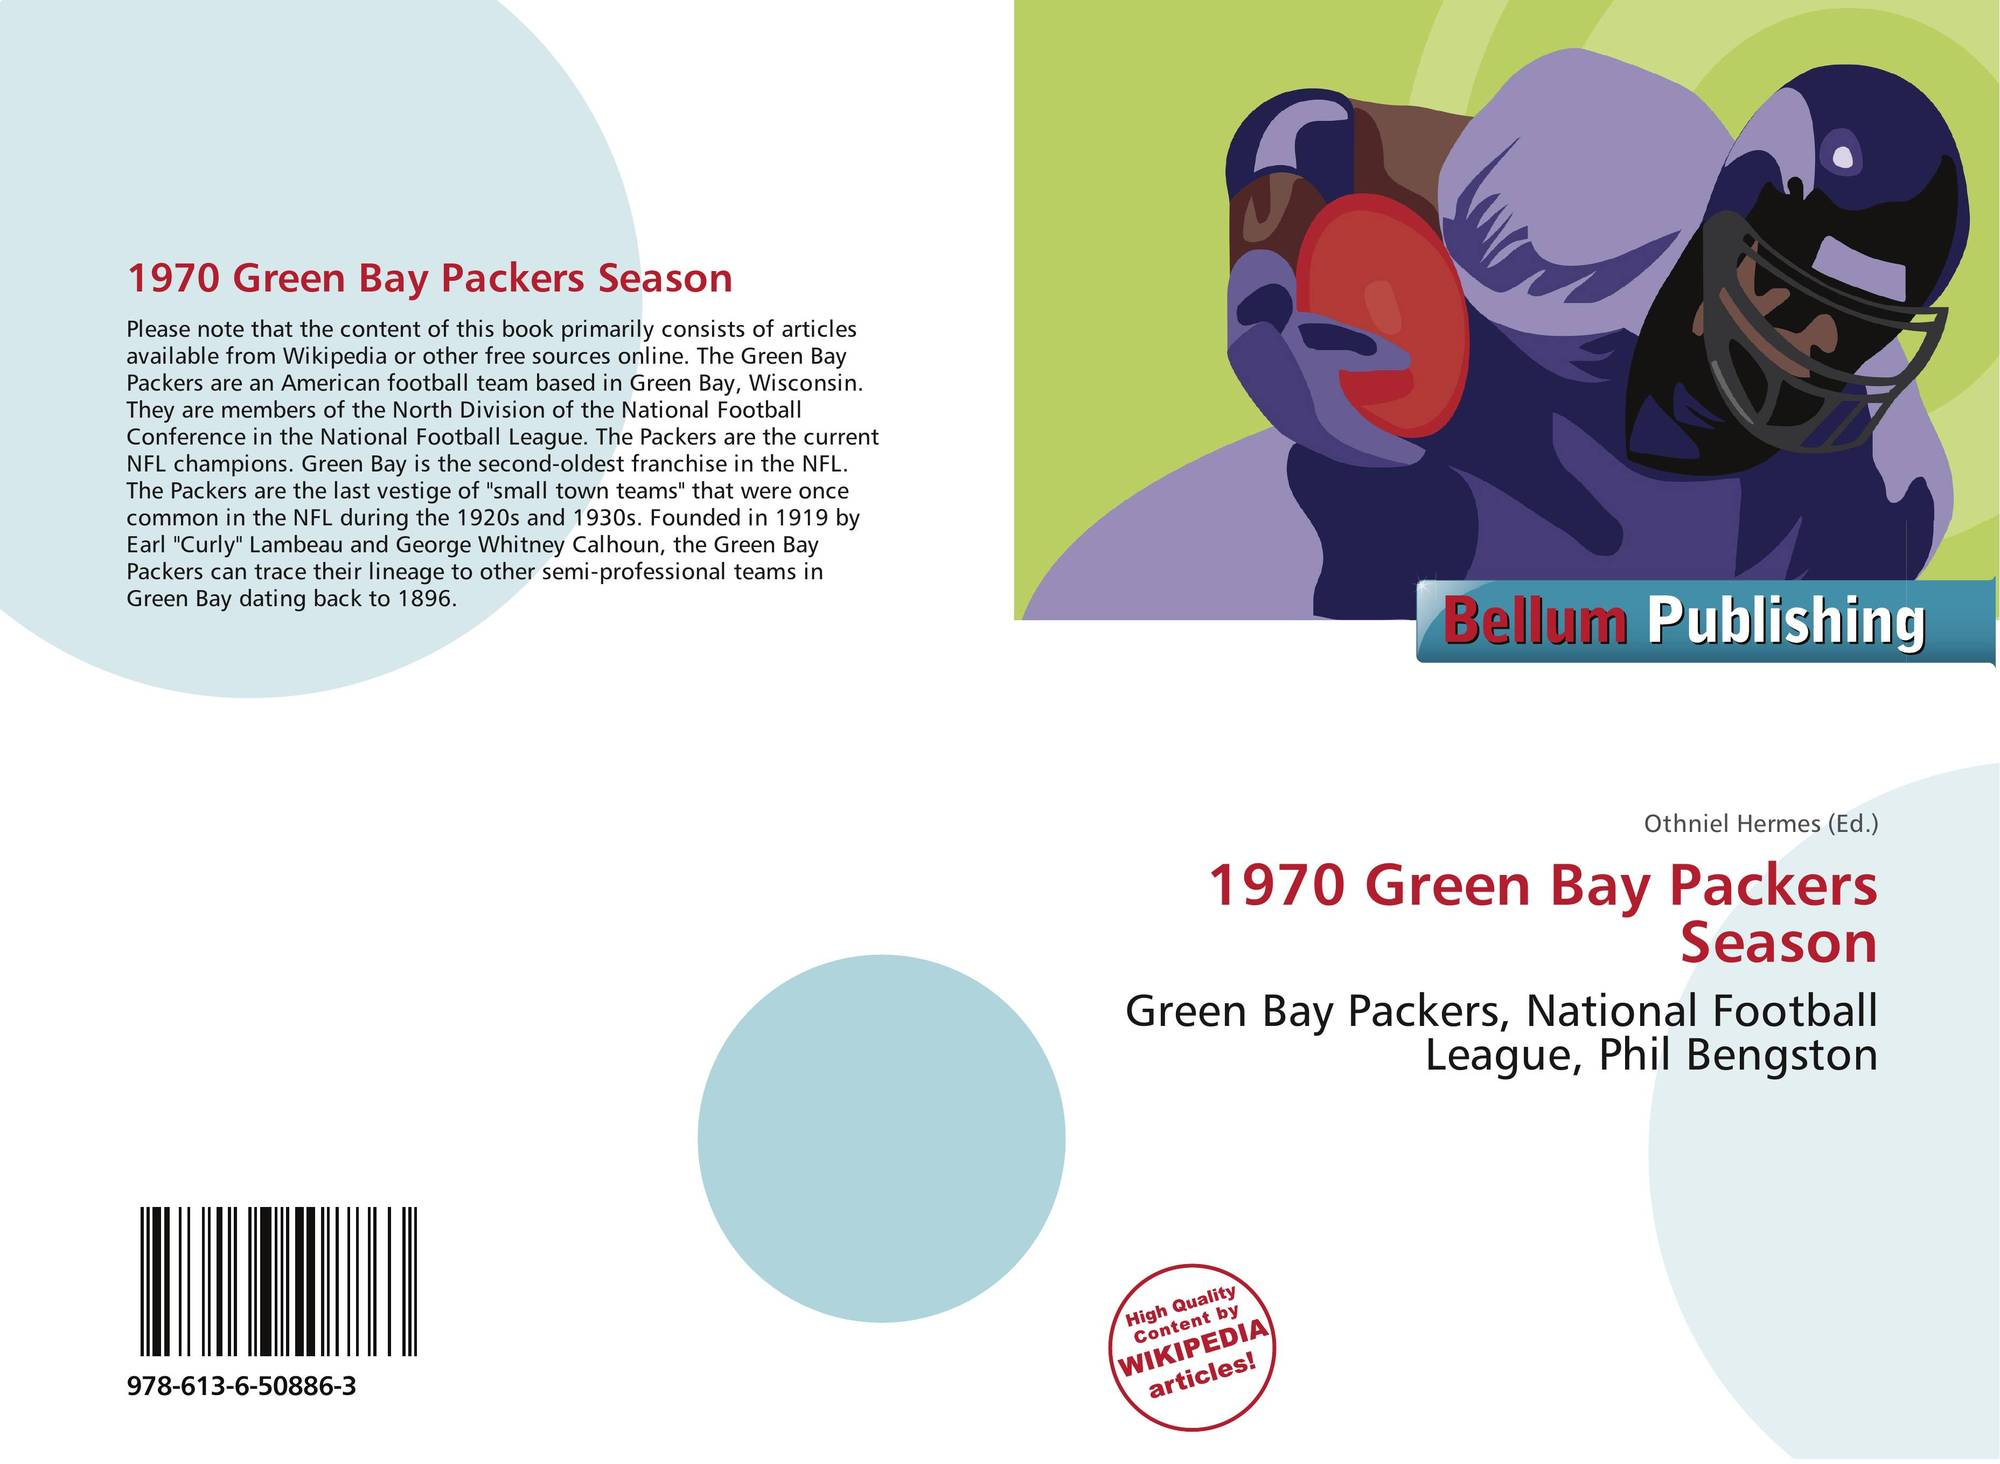 a description of green bay as small by metropolitan standards New water (green bay metropolitan sewerage change for the green bay, wis, metropolitan natural resources and epa standards has expanded the.